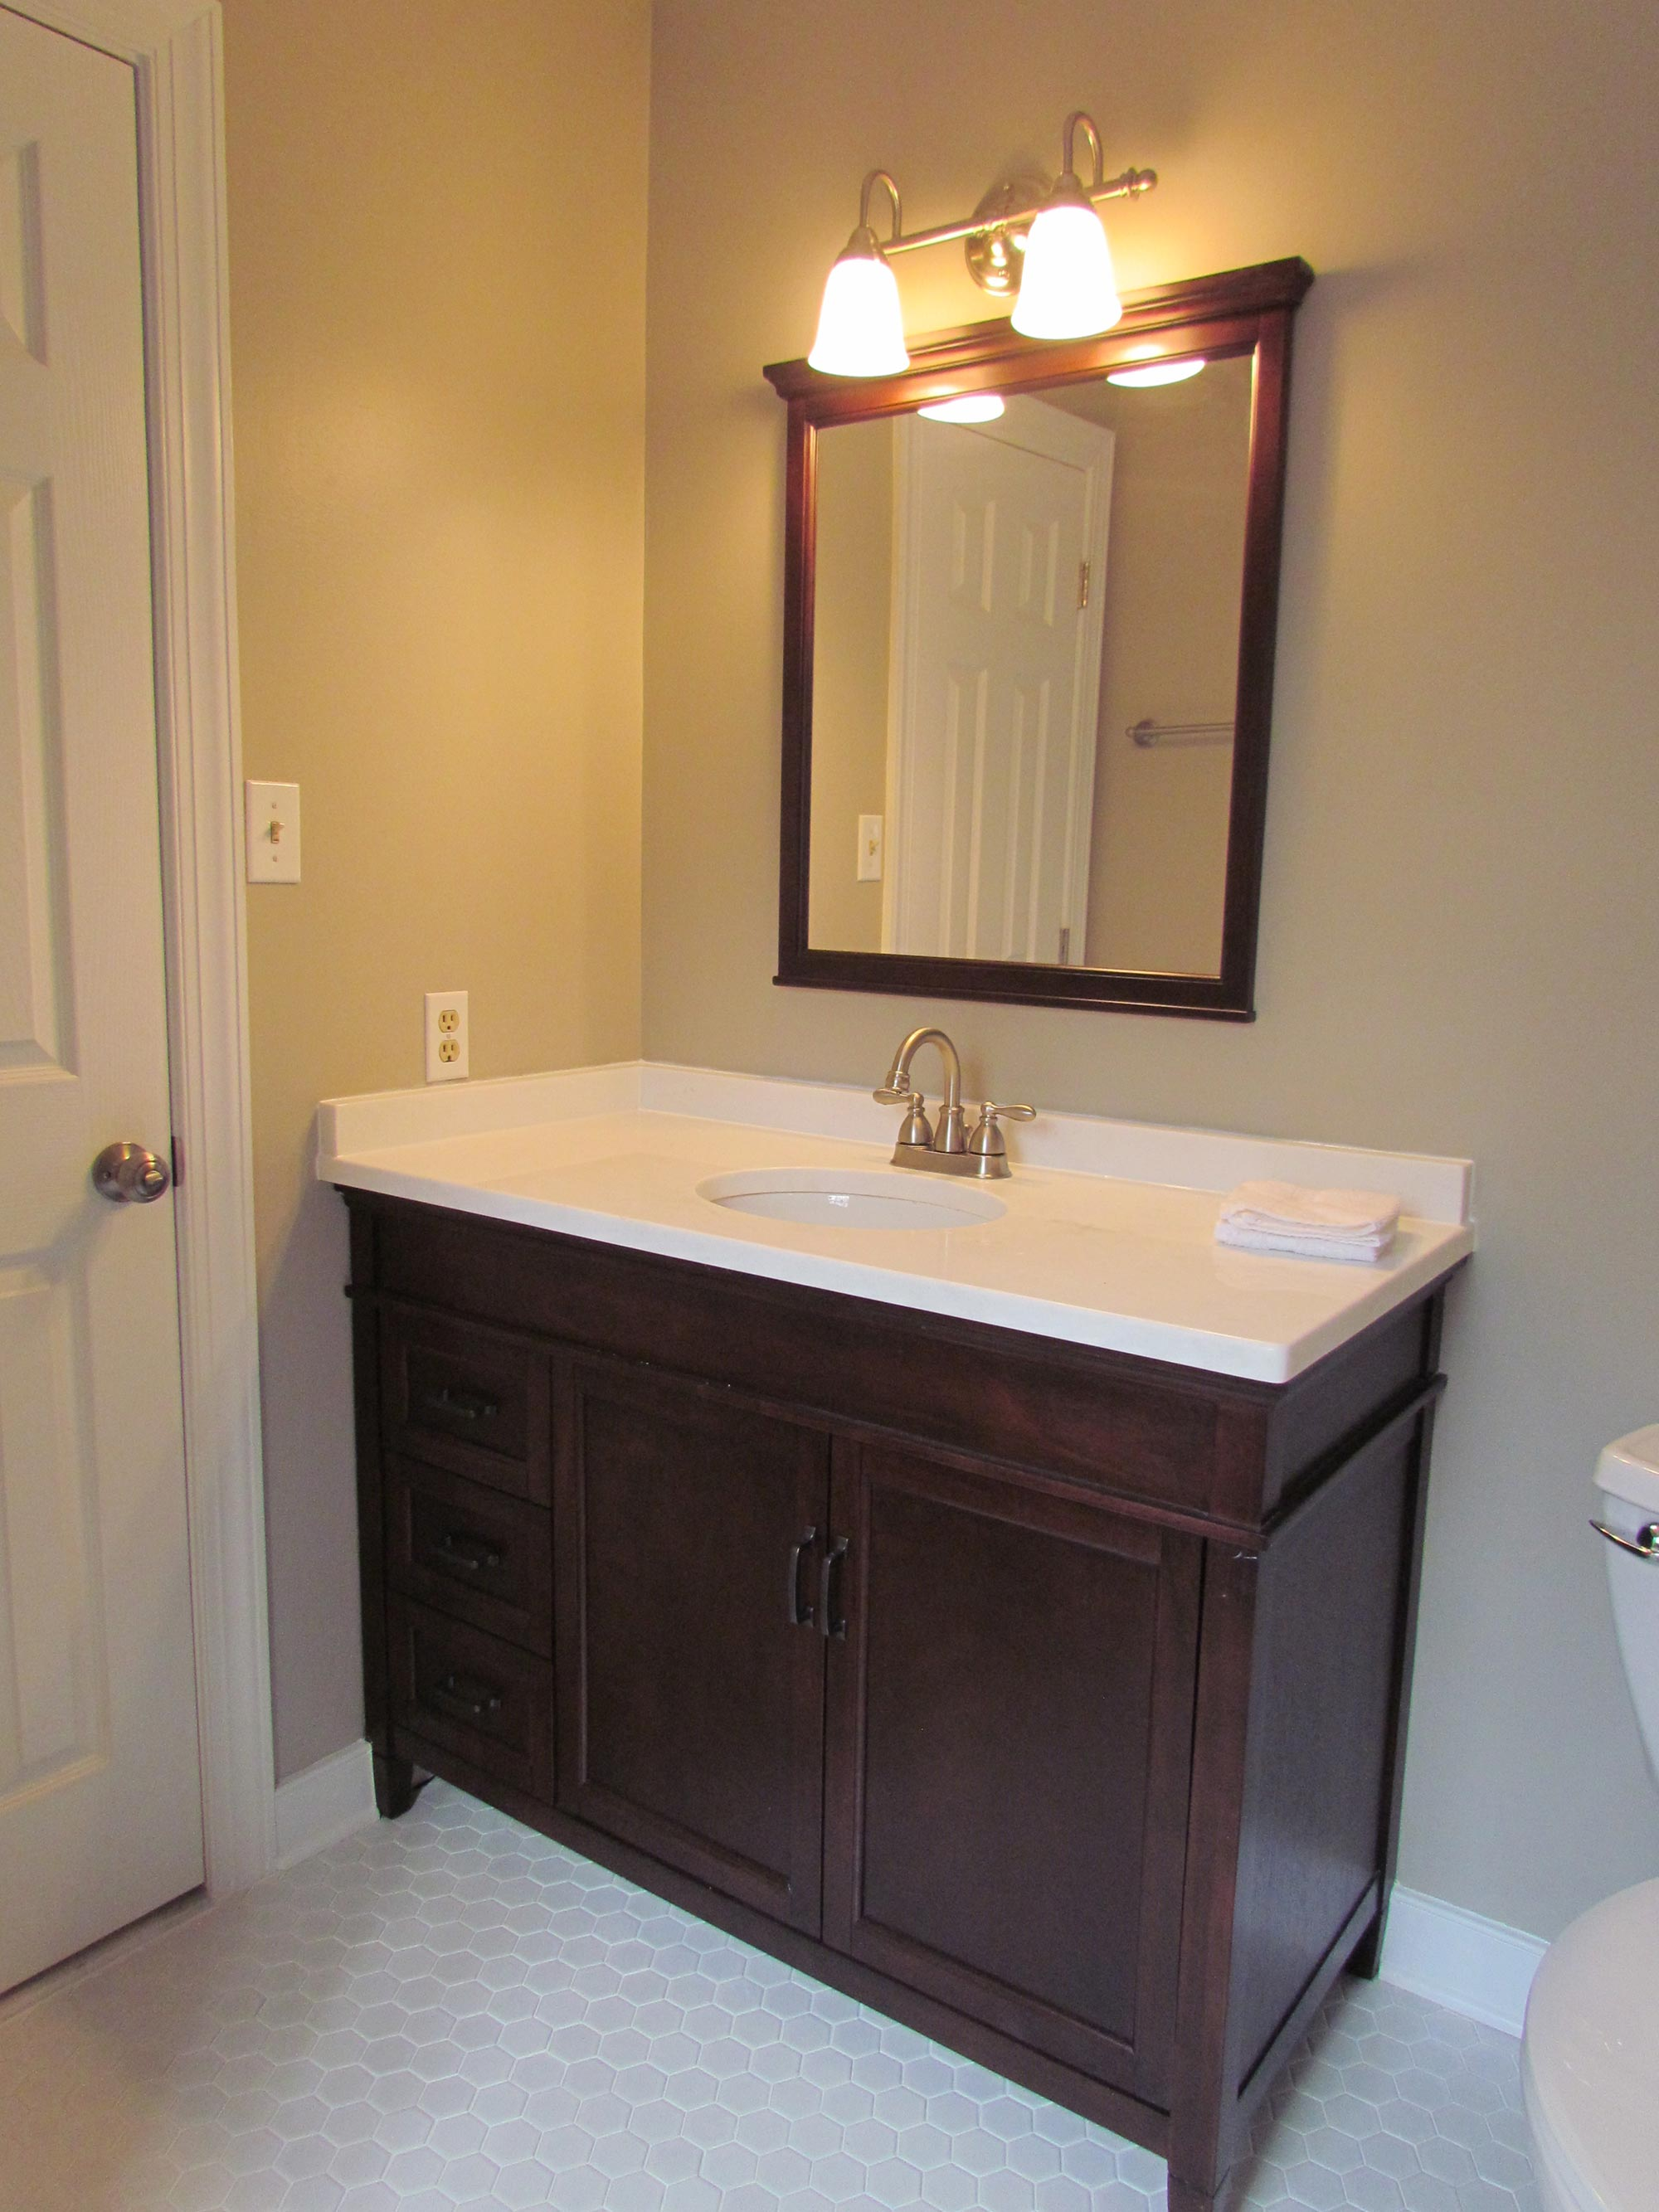 Bathroom Remodeling In Richmond Va Bathroom Remodeling In Download Bathroom Remodeling Richmond